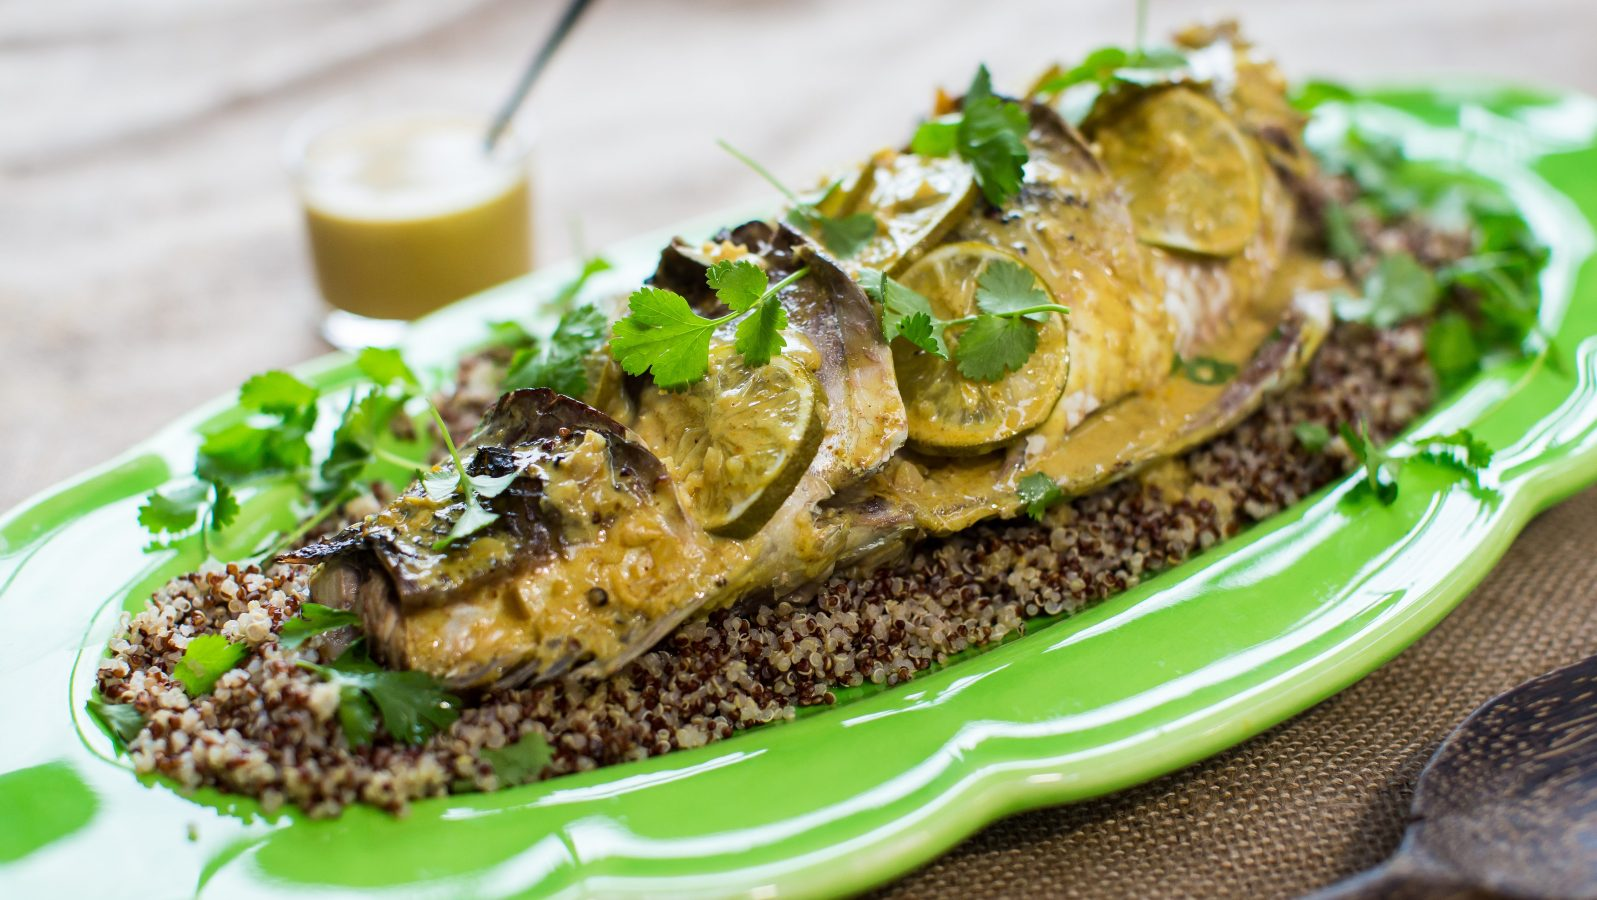 A whole cooked fish topped with yellowish sauce, lemon slices and green herbs on bed of wholegrain mustard on a light green platter, a jar of sauce in the back.